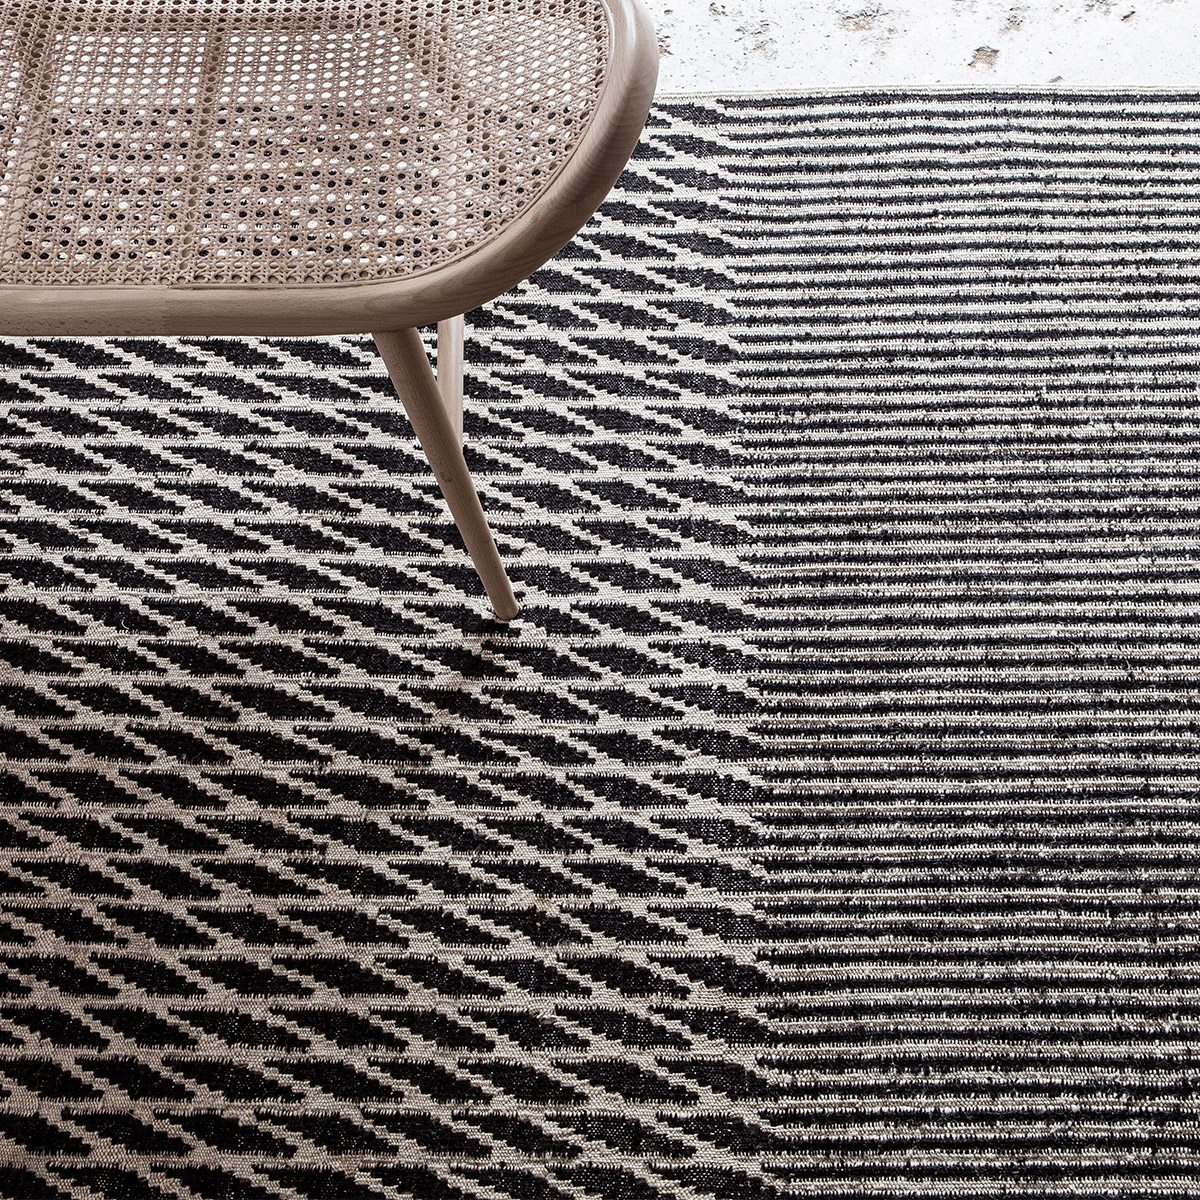 black and white geometric rug with Japanese light oak chair